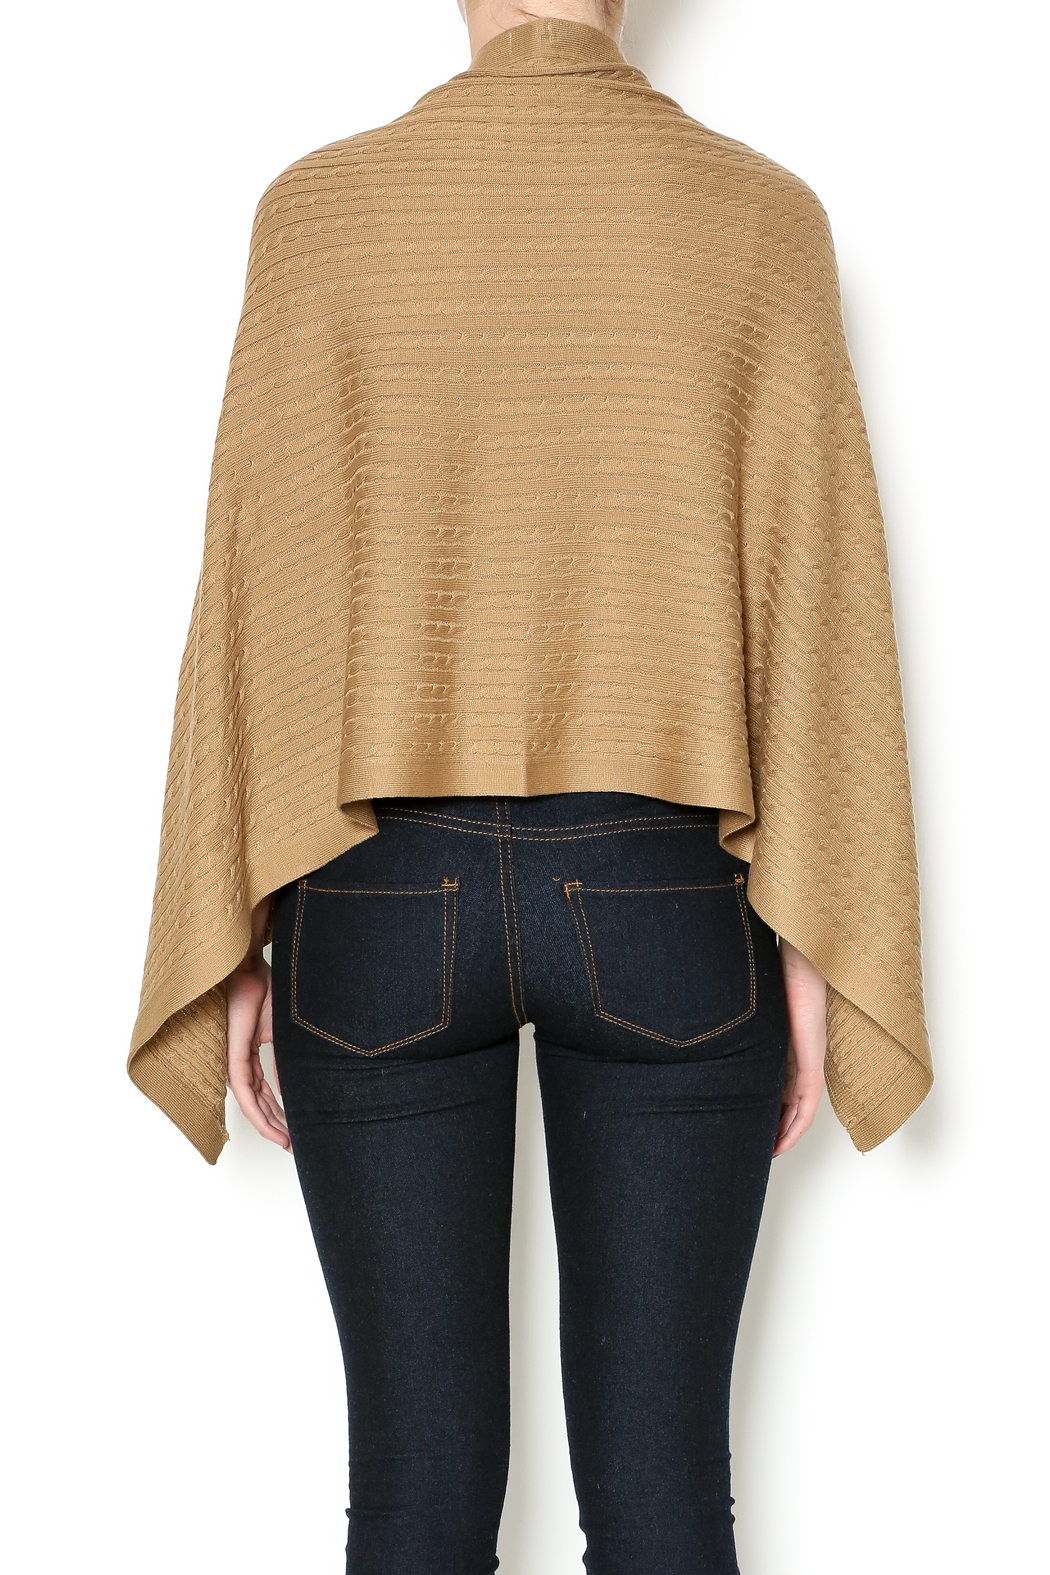 Patricia's Presents Camel Three Way Top - Back Cropped Image